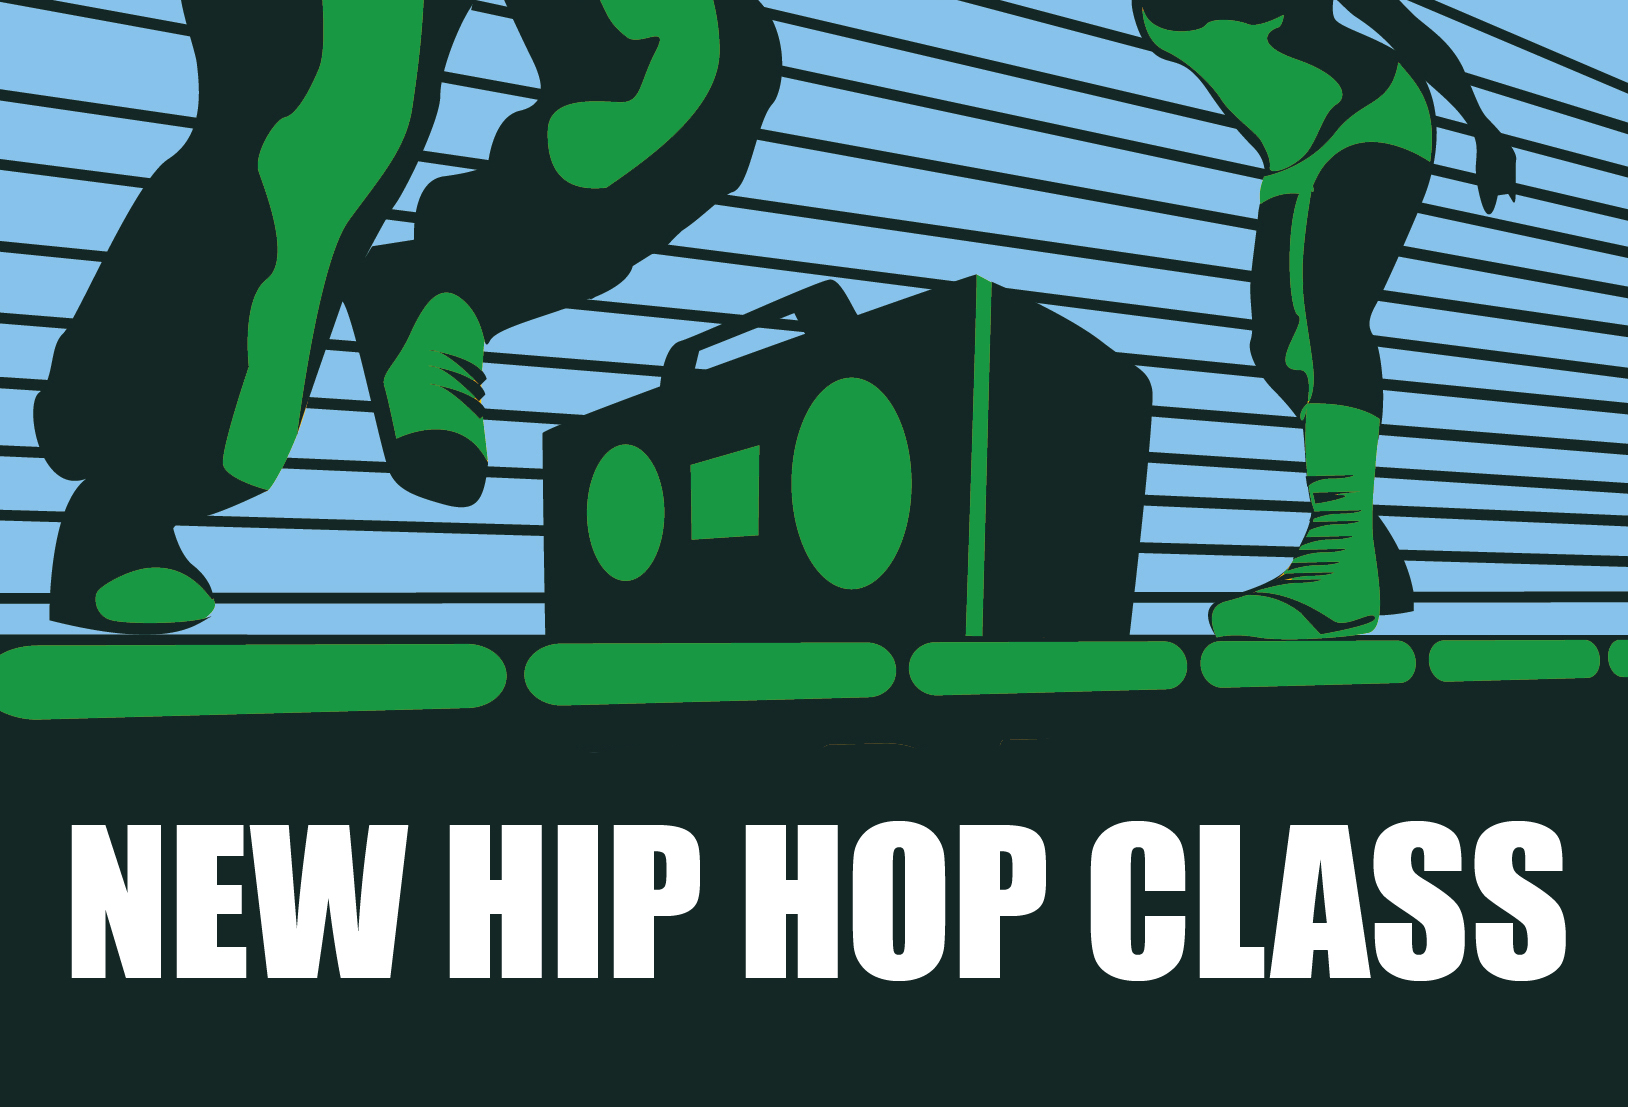 New Hip Hop Class - Nov 2016 - Wendon Dance Studio